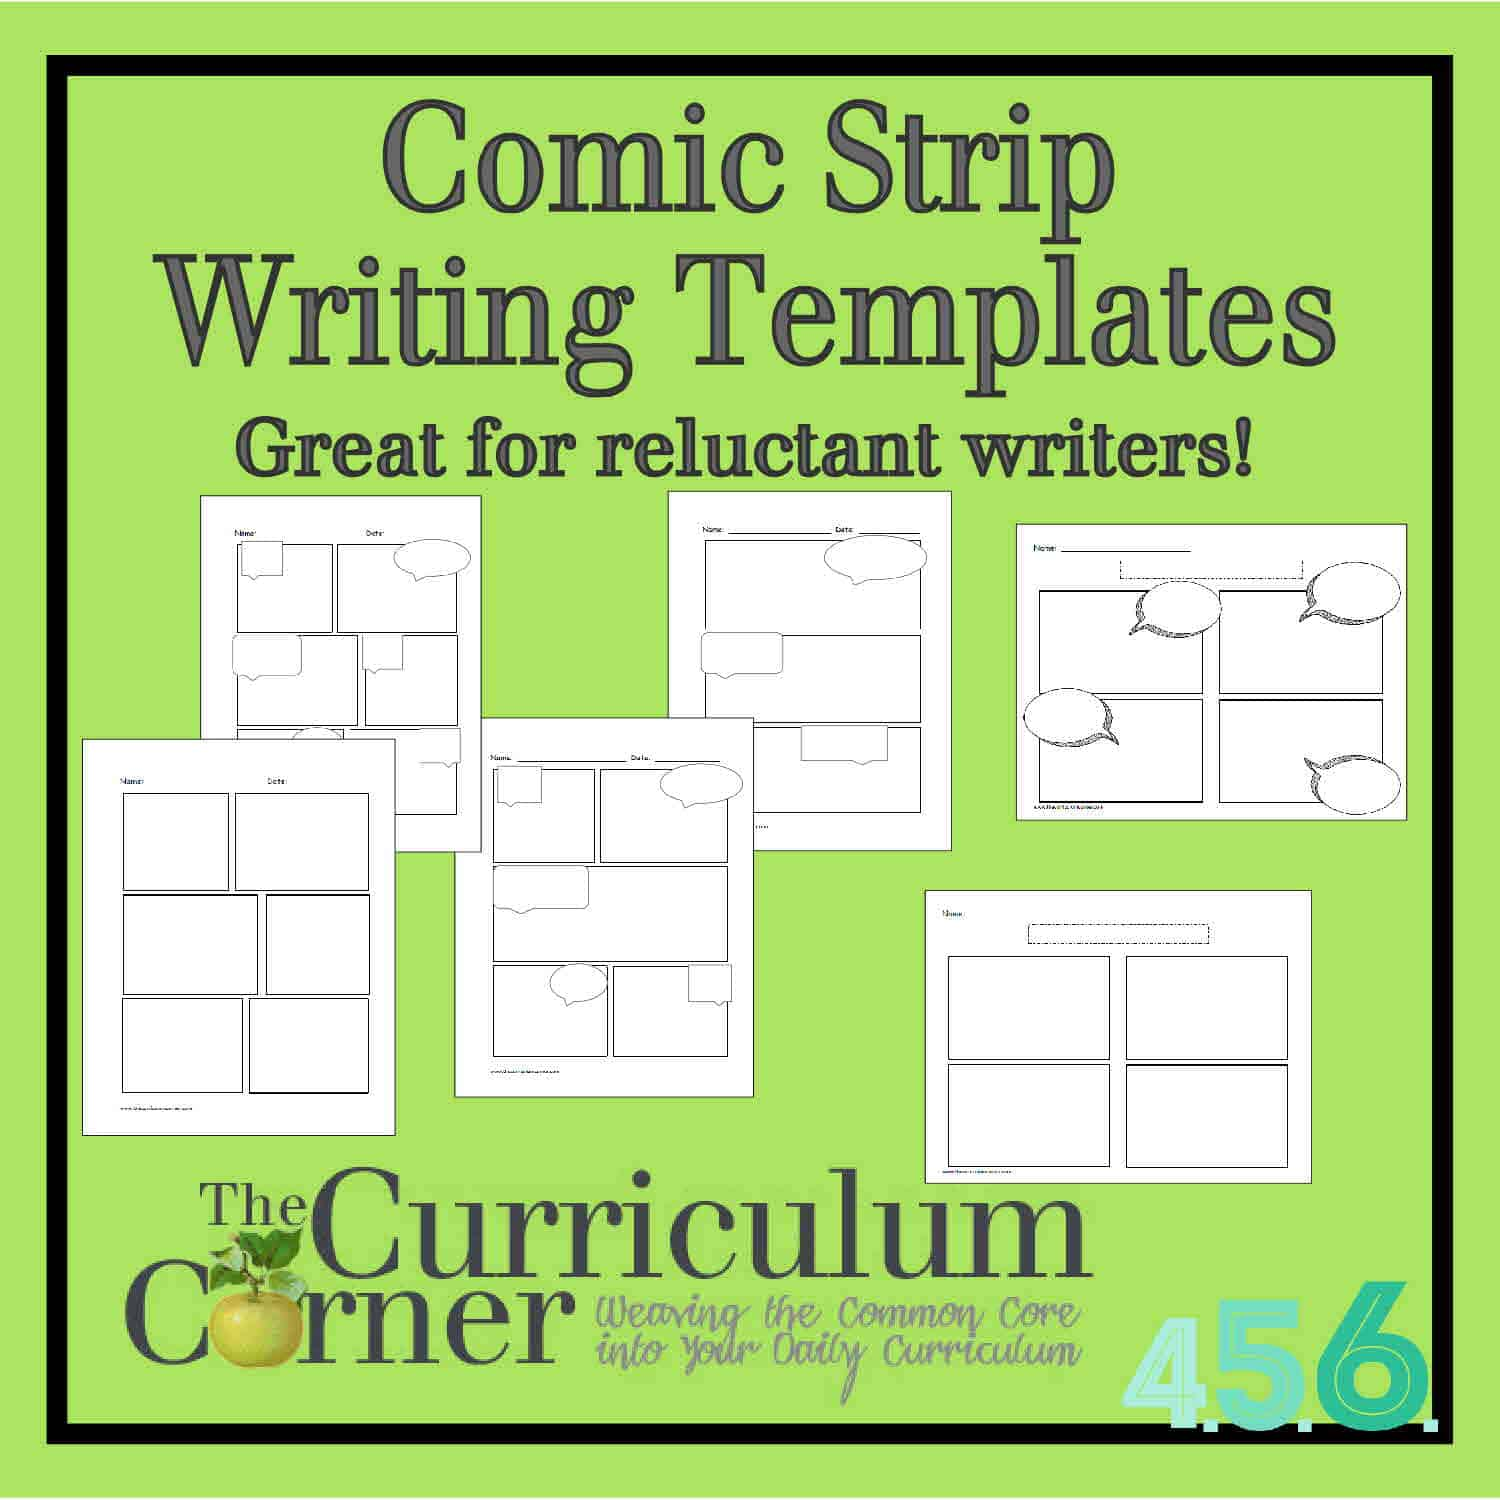 Comic Strip Template | Comic Strip Writing Templates The Curriculum Corner 4 5 6